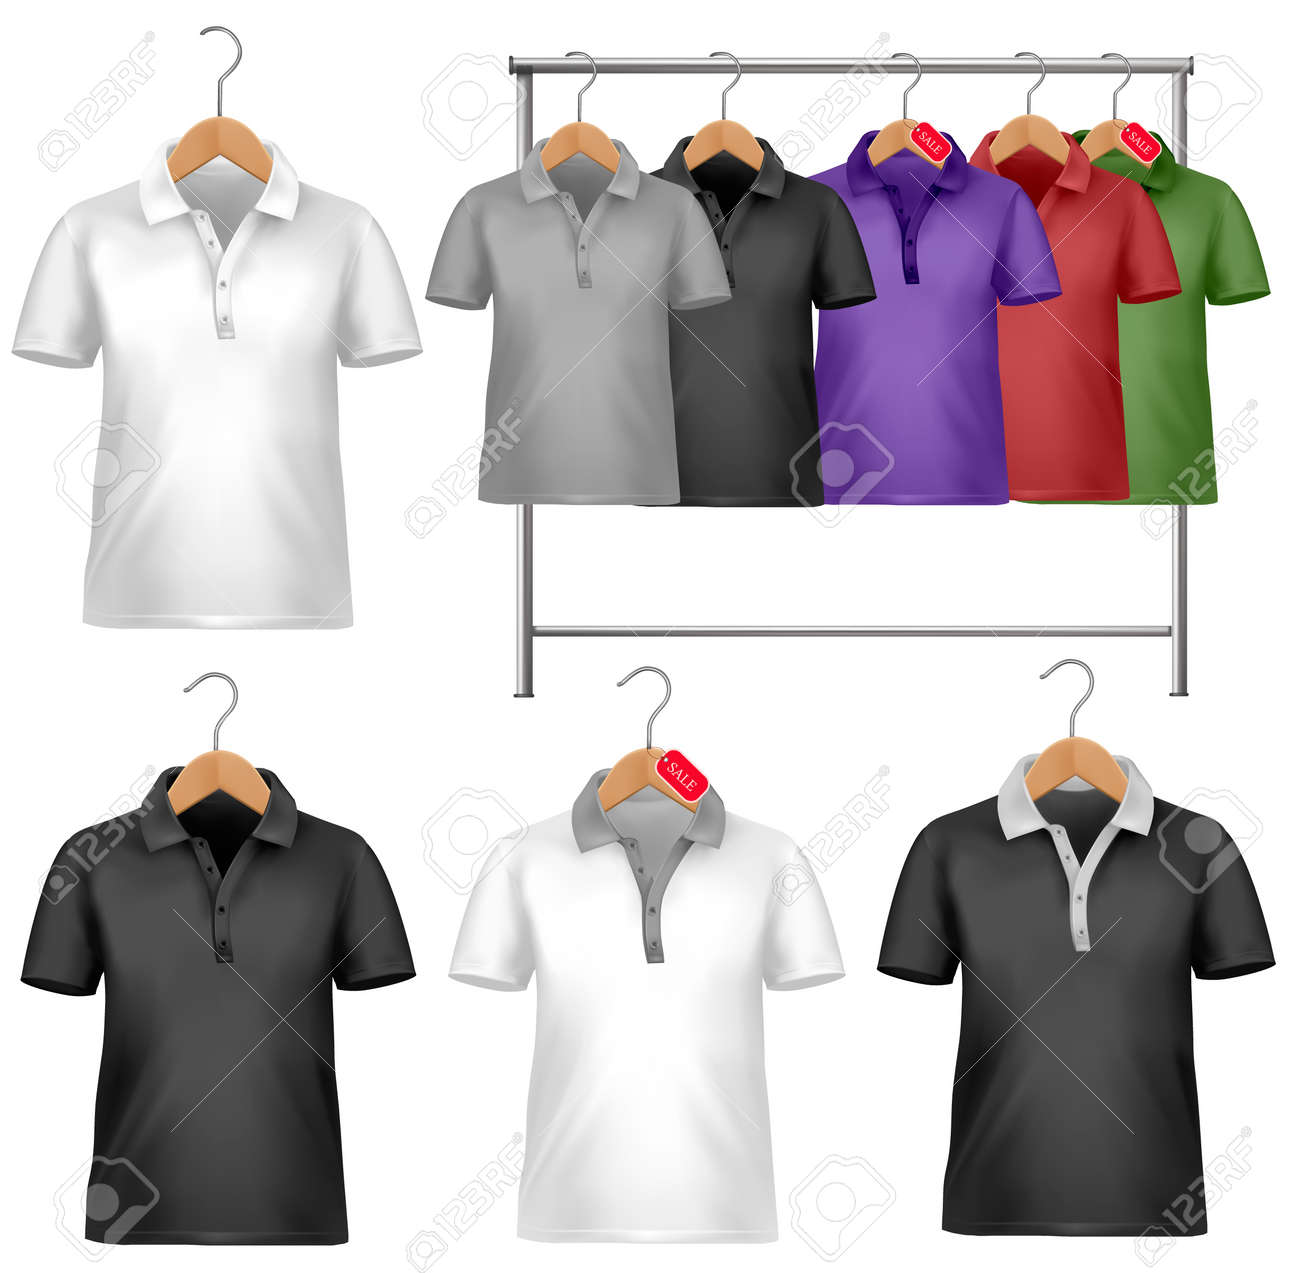 Design t shirt price - Black And White T Shirt Design Template Clothes Hanger With Shirts With Price Tags